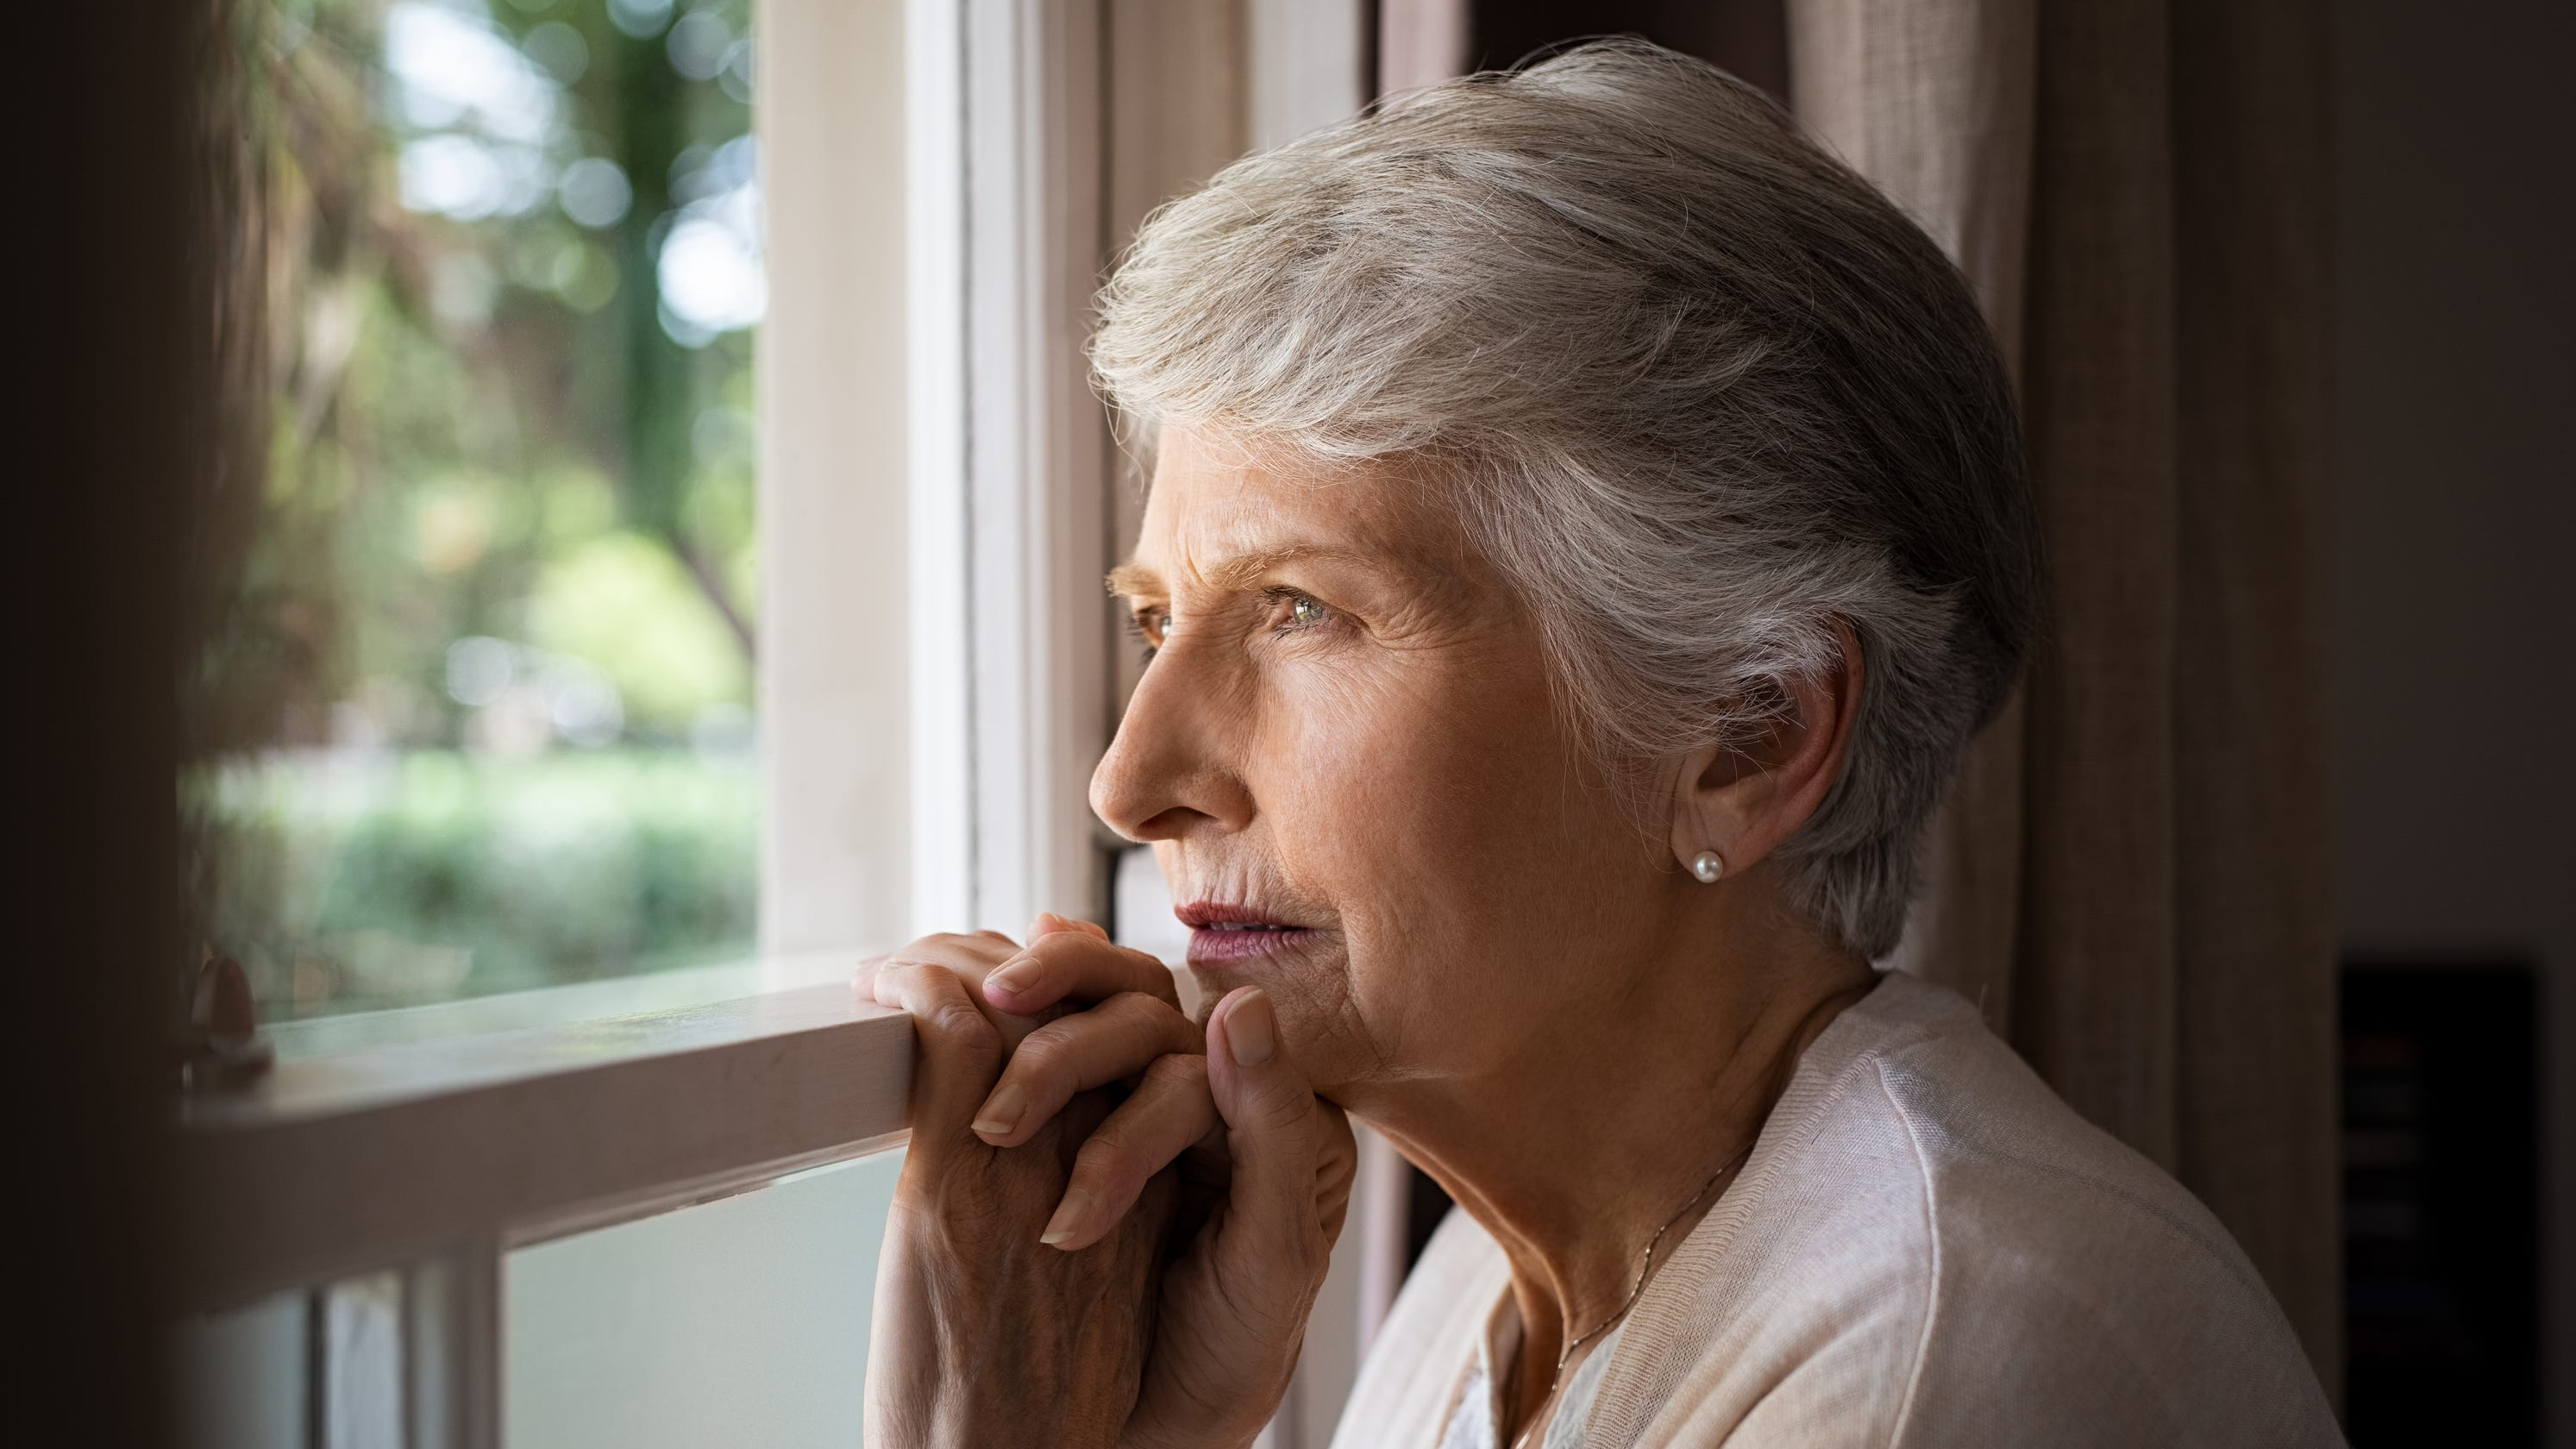 Dementia Diagnoses May Be Late In Women Because Sex Difference Study